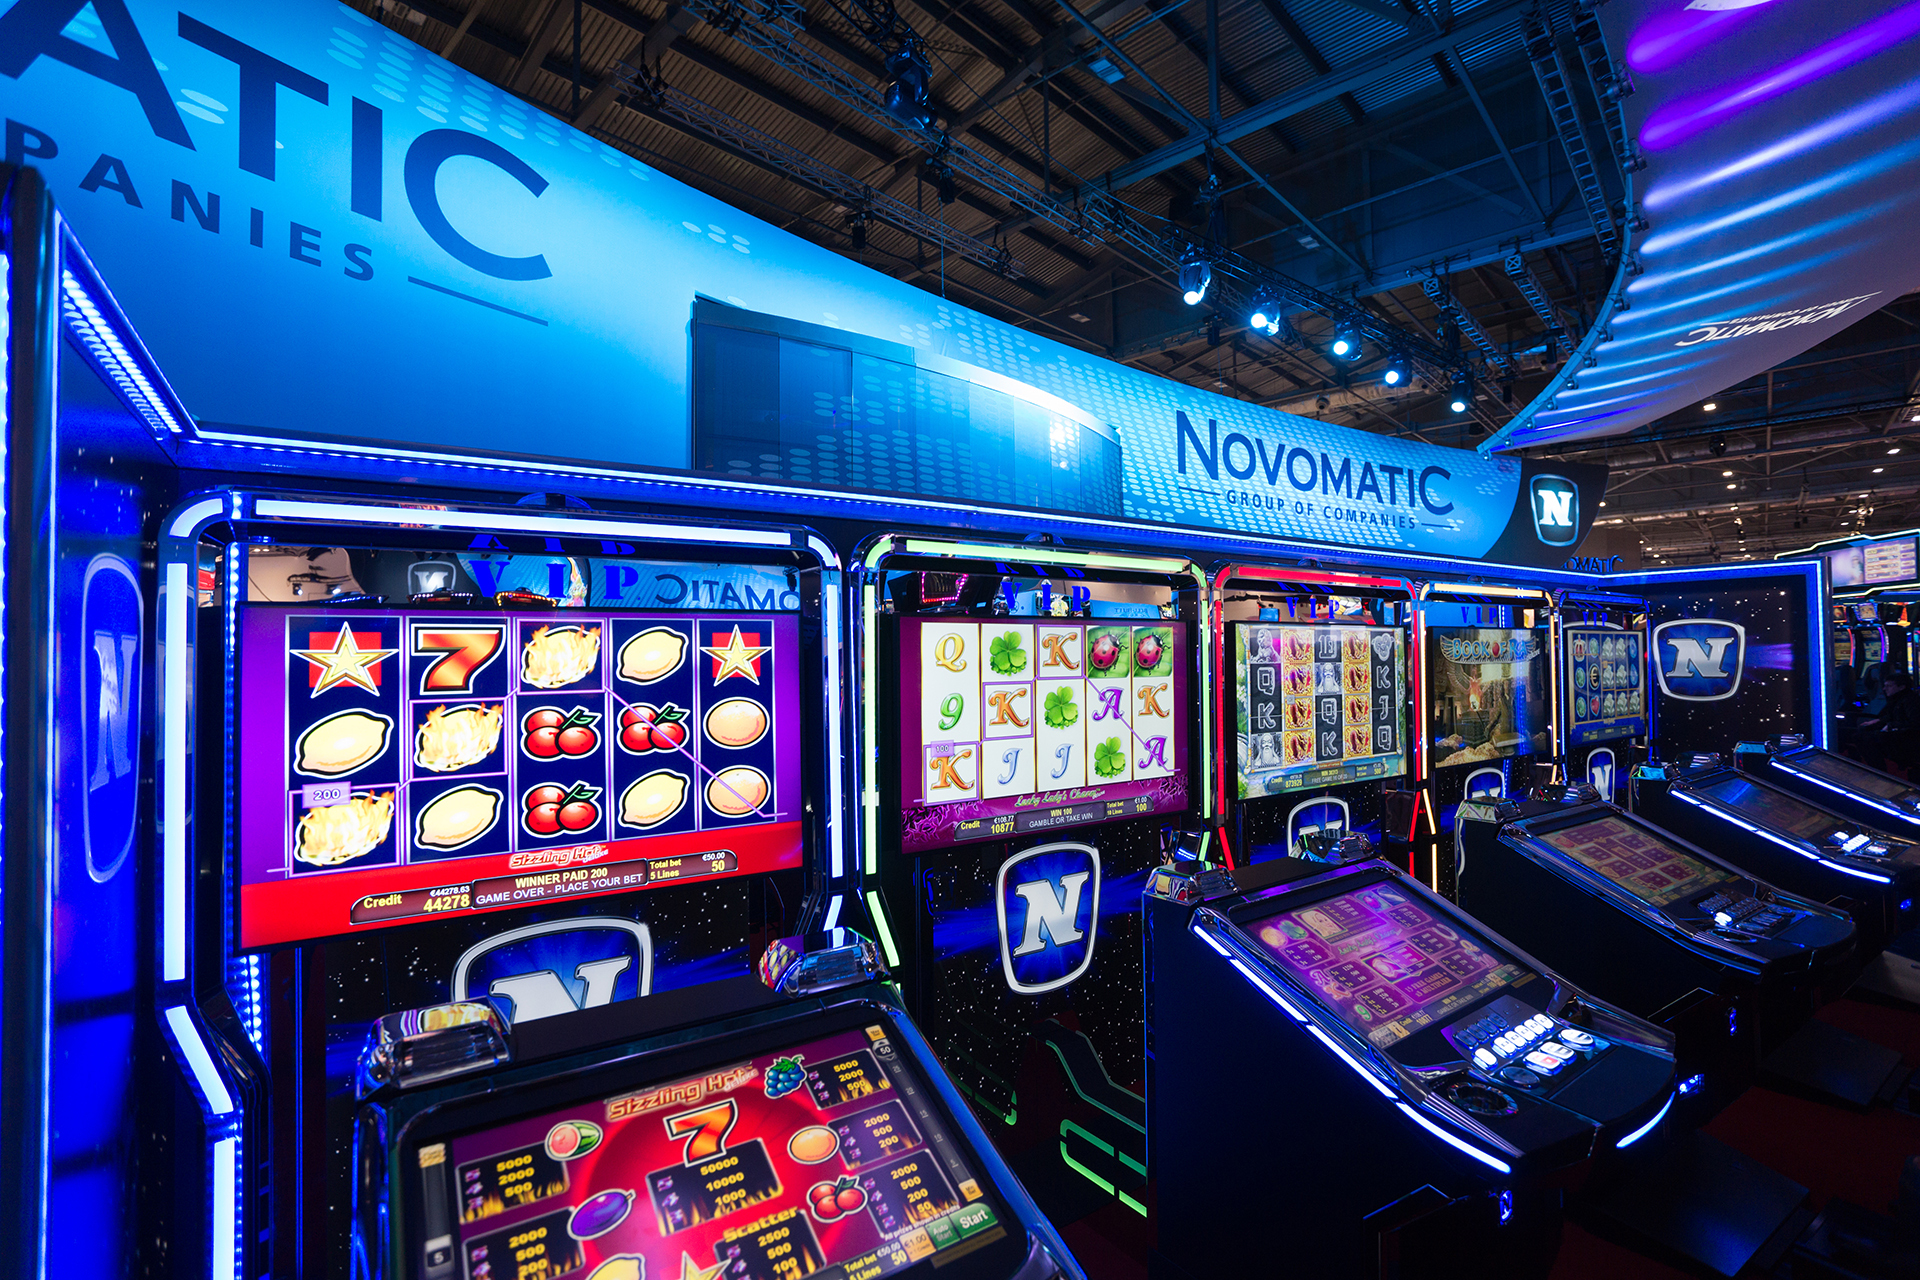 Novomatic casino online 25 casino july online pings trackback